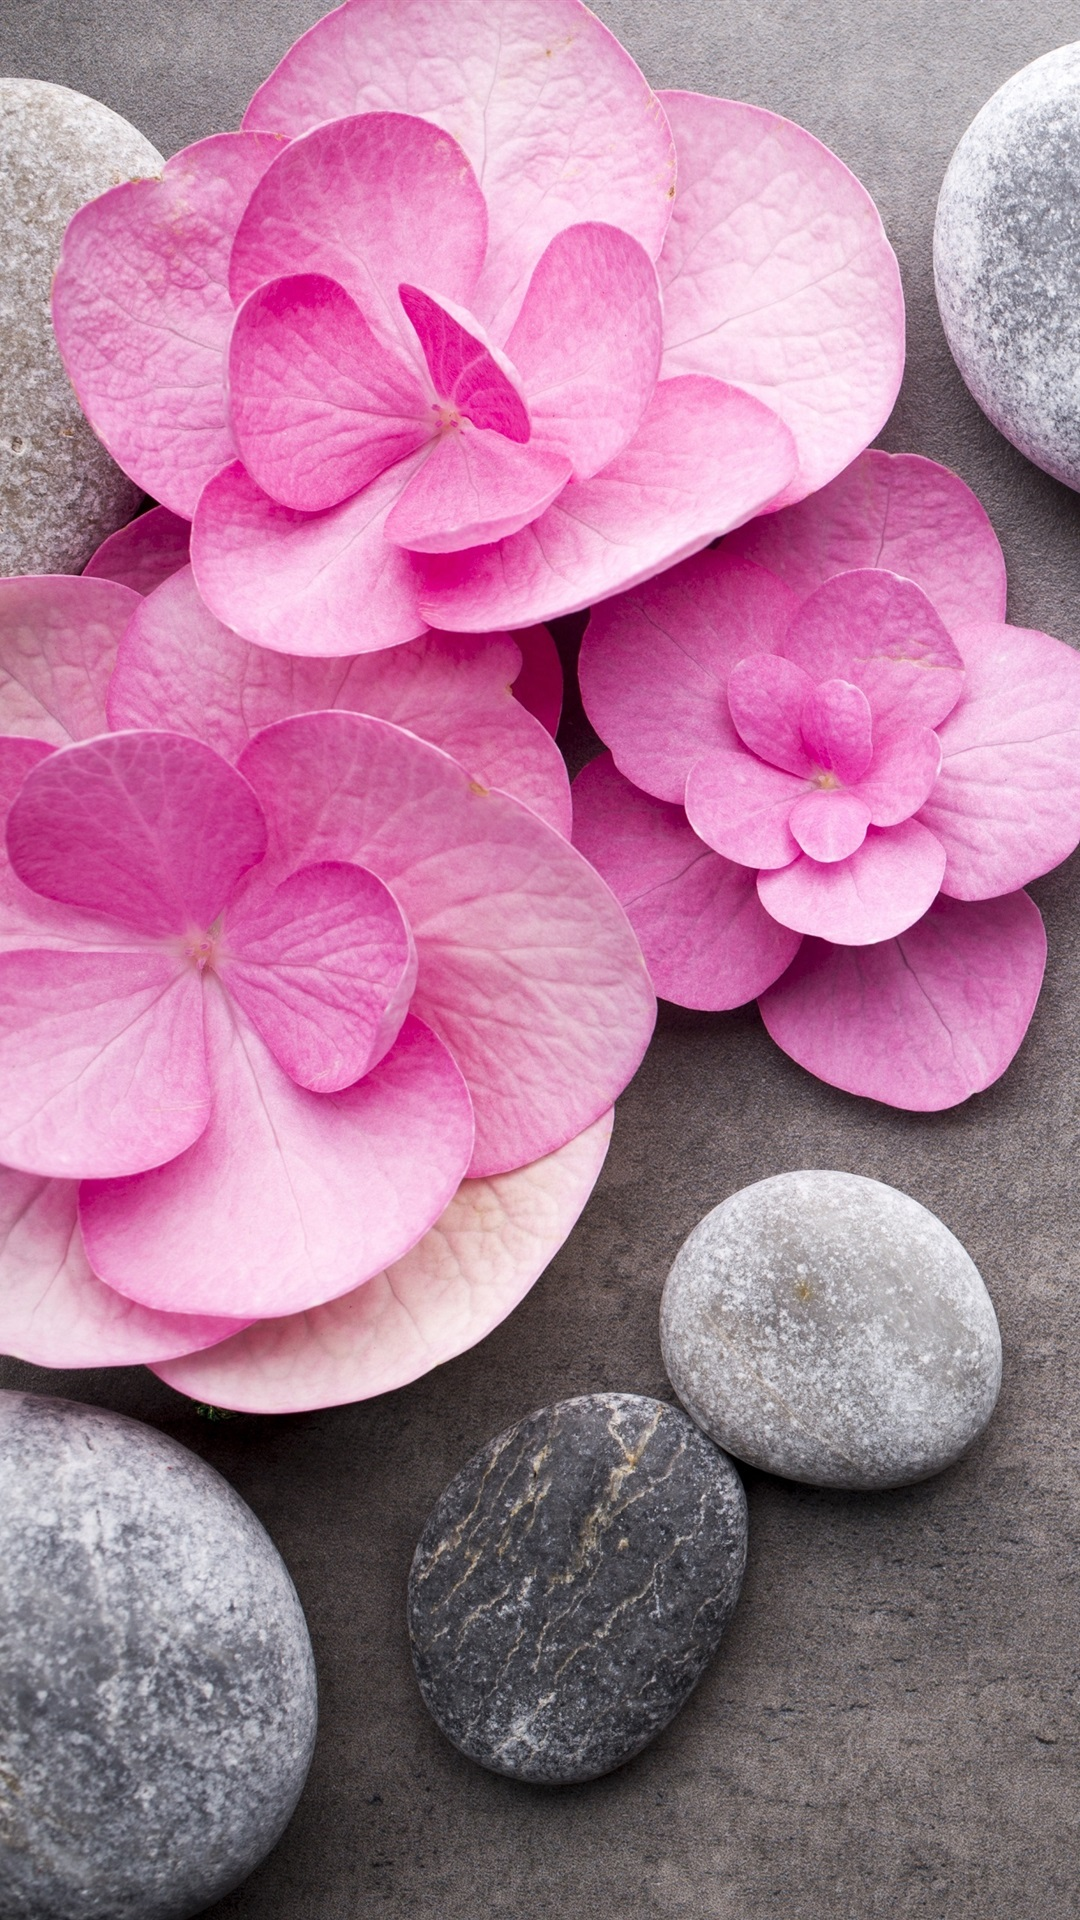 wallpaper pink flowers stones spa theme 3840x2160 uhd 4k